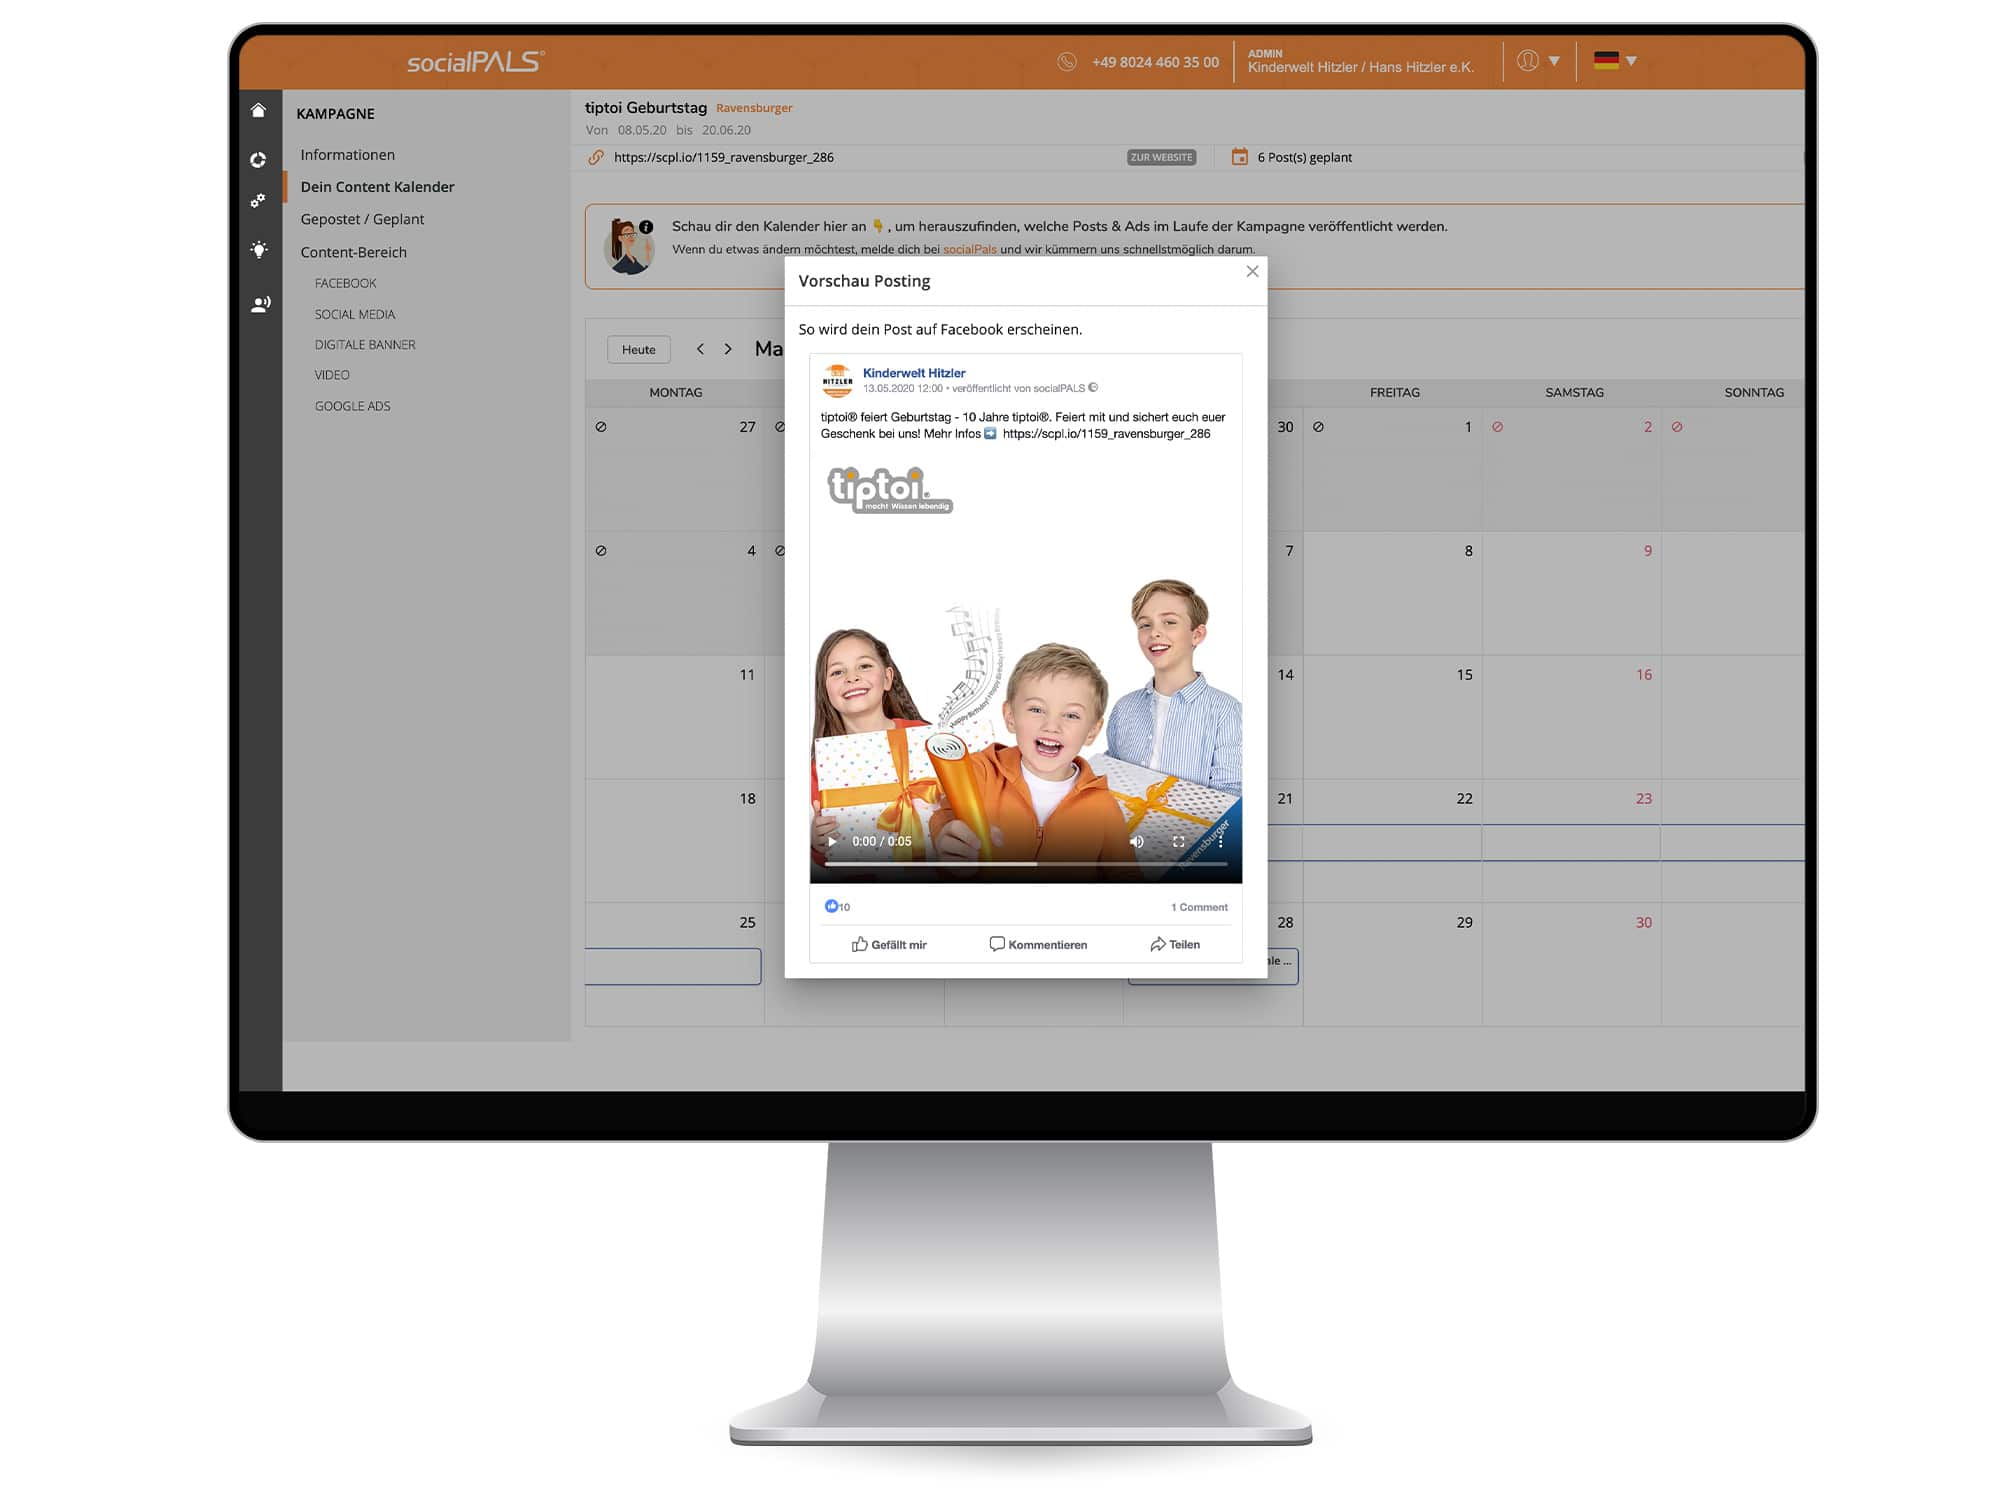 The entire campaign can be started in the content calendar with just one click.